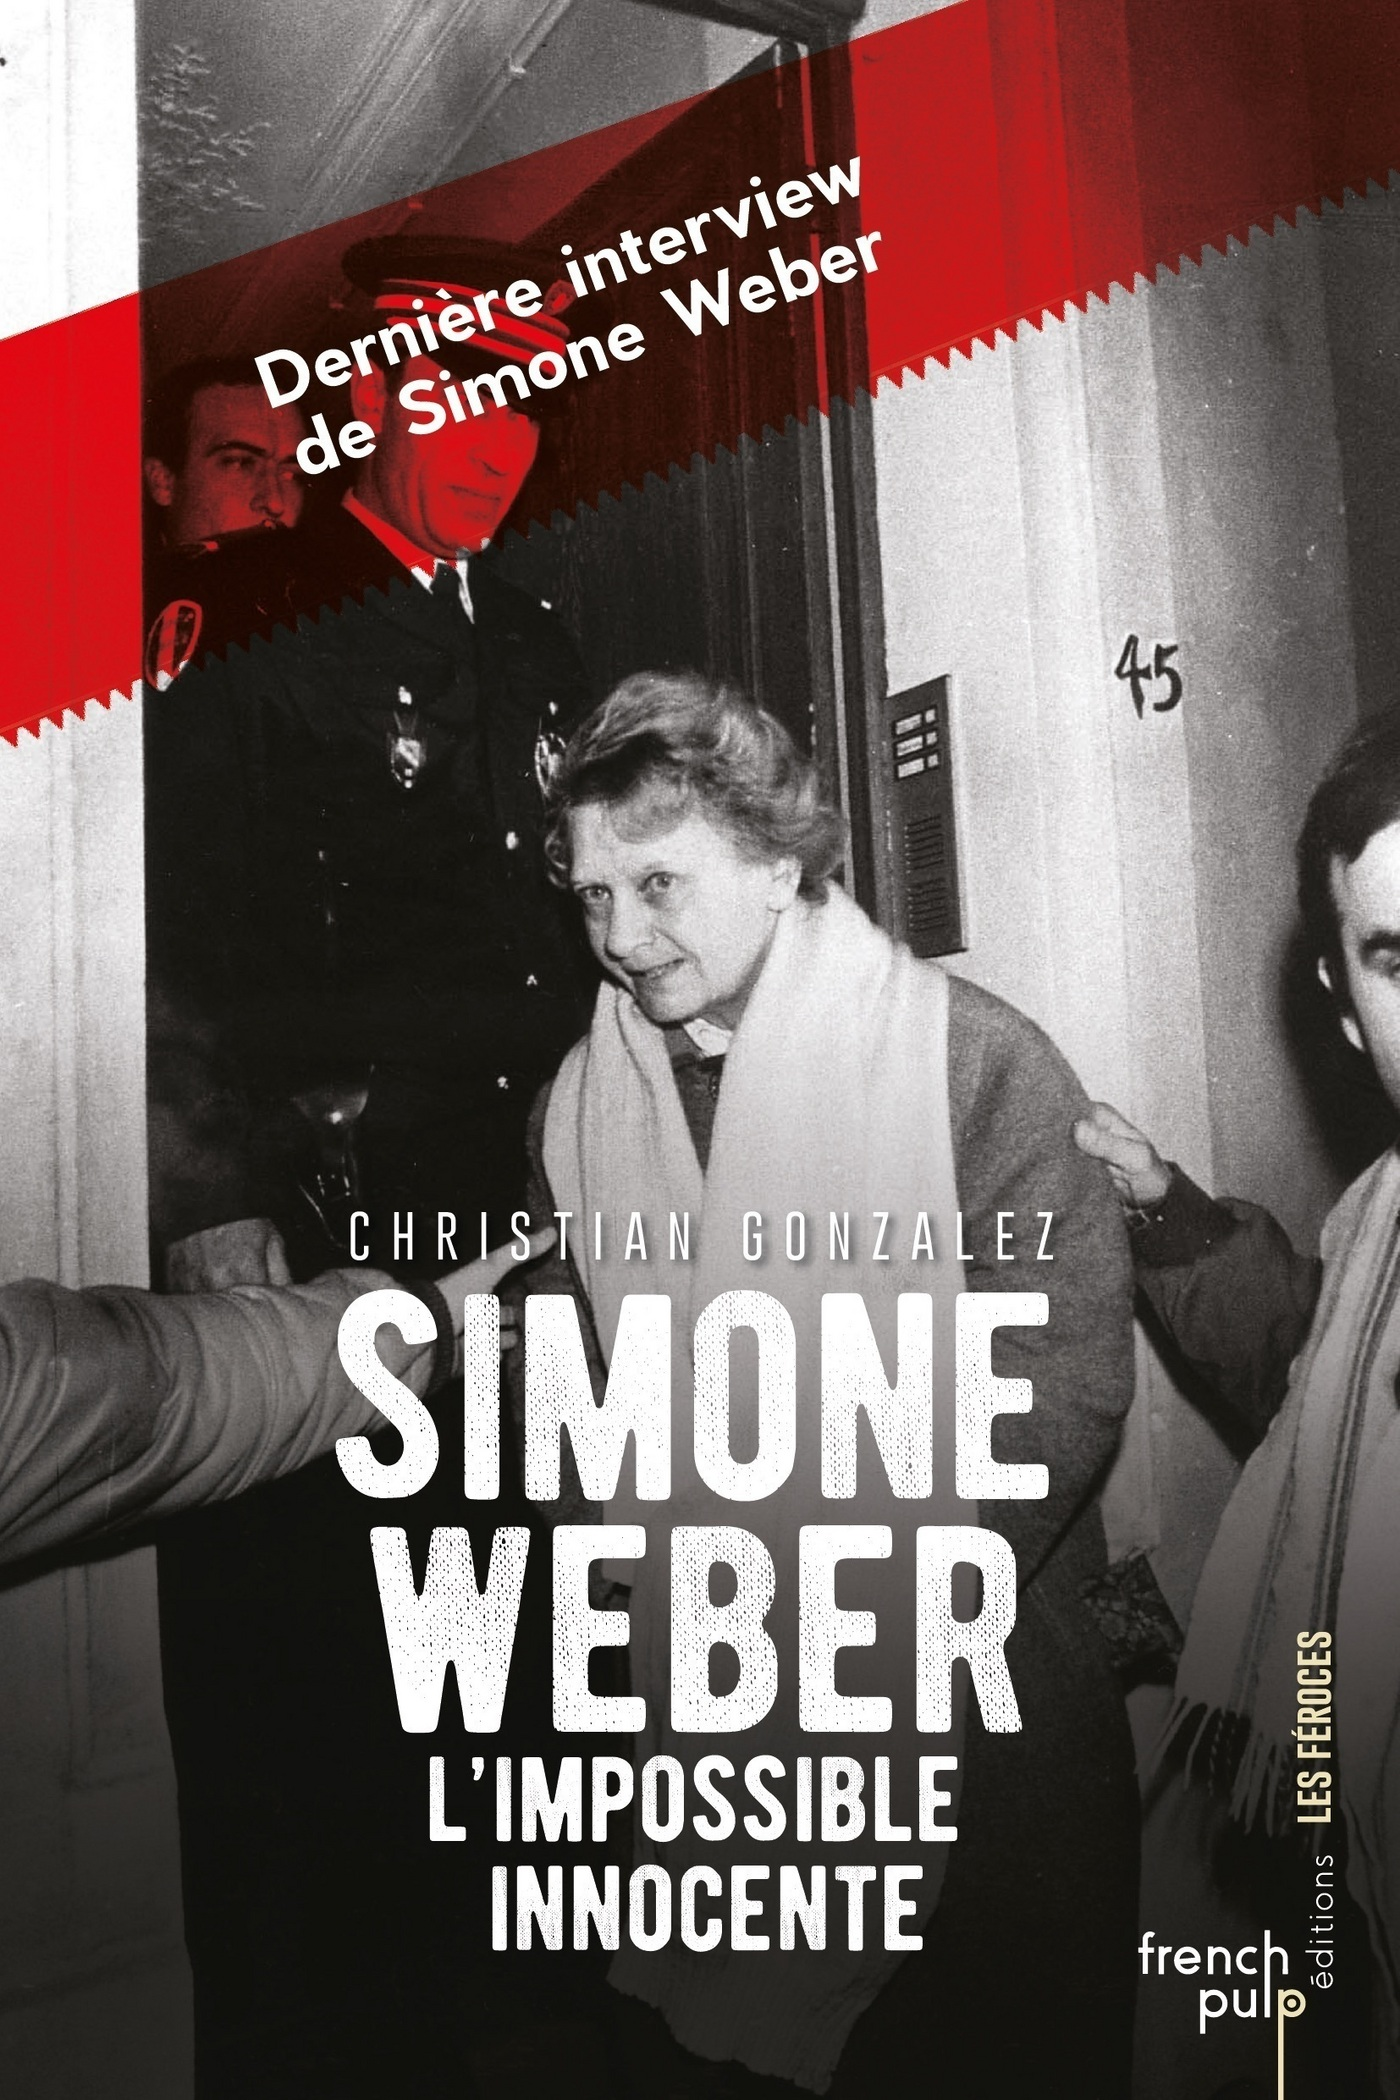 L'affaire Simone Weber